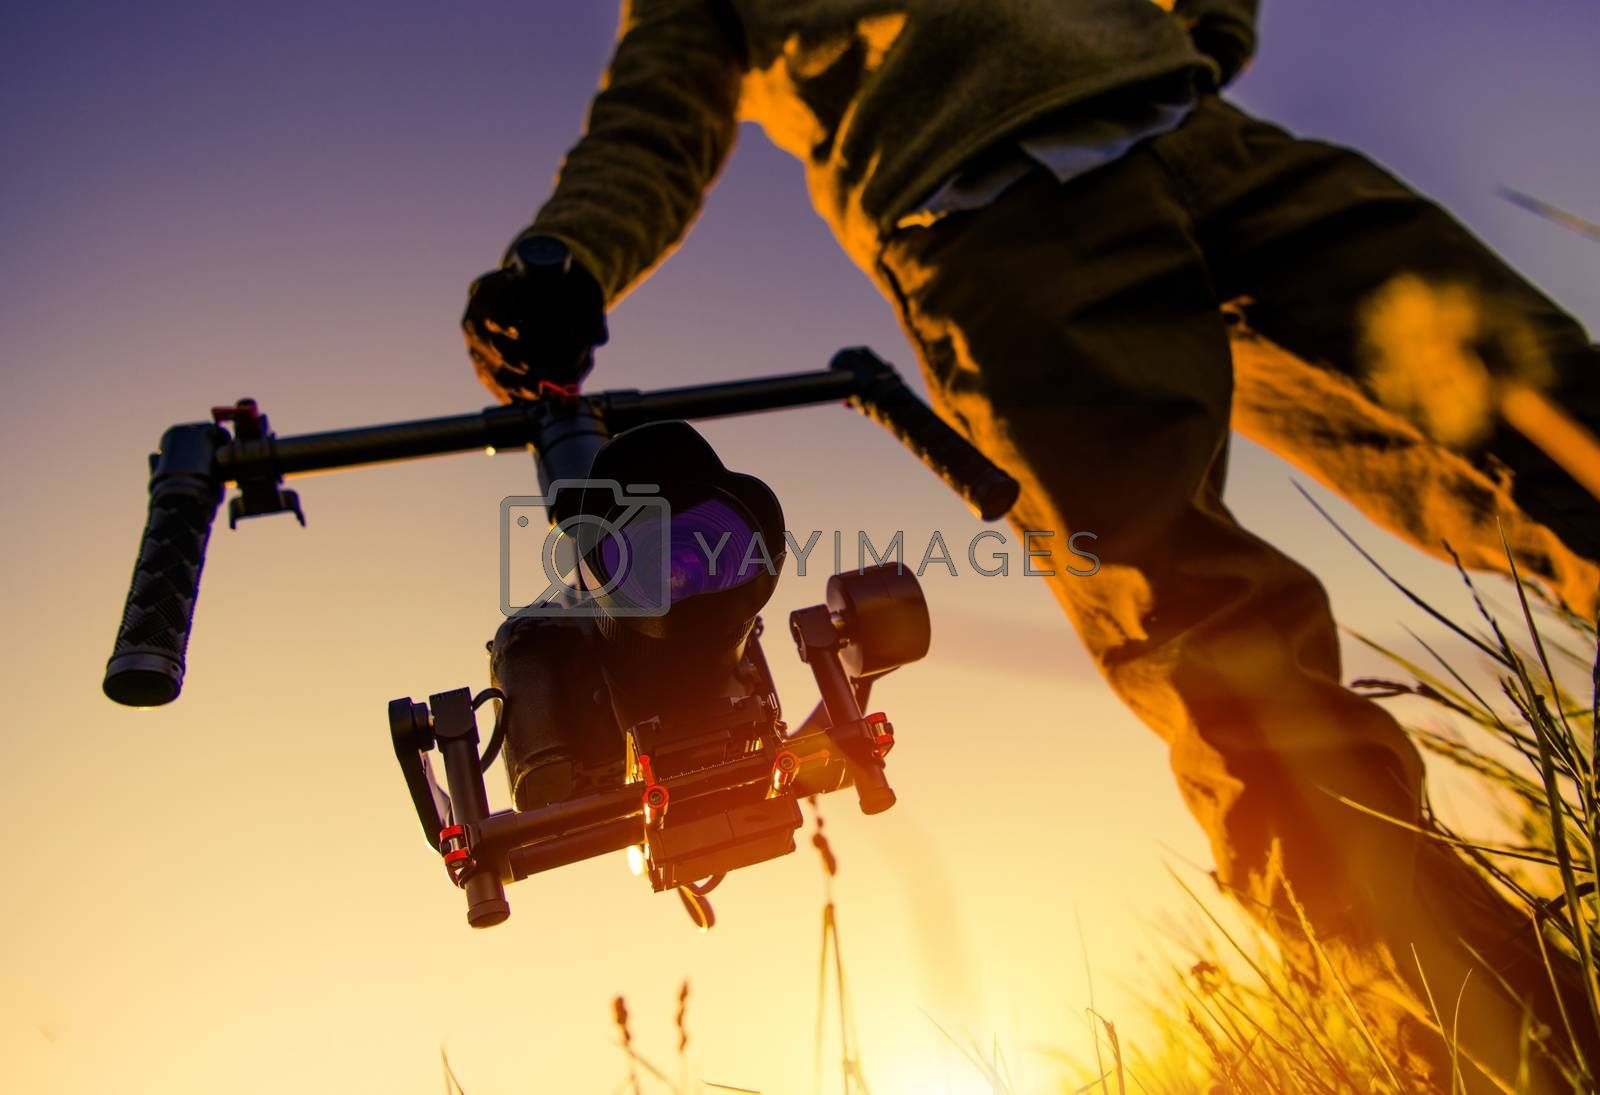 Royalty free image of Camera Gimbal Stabilization by welcomia